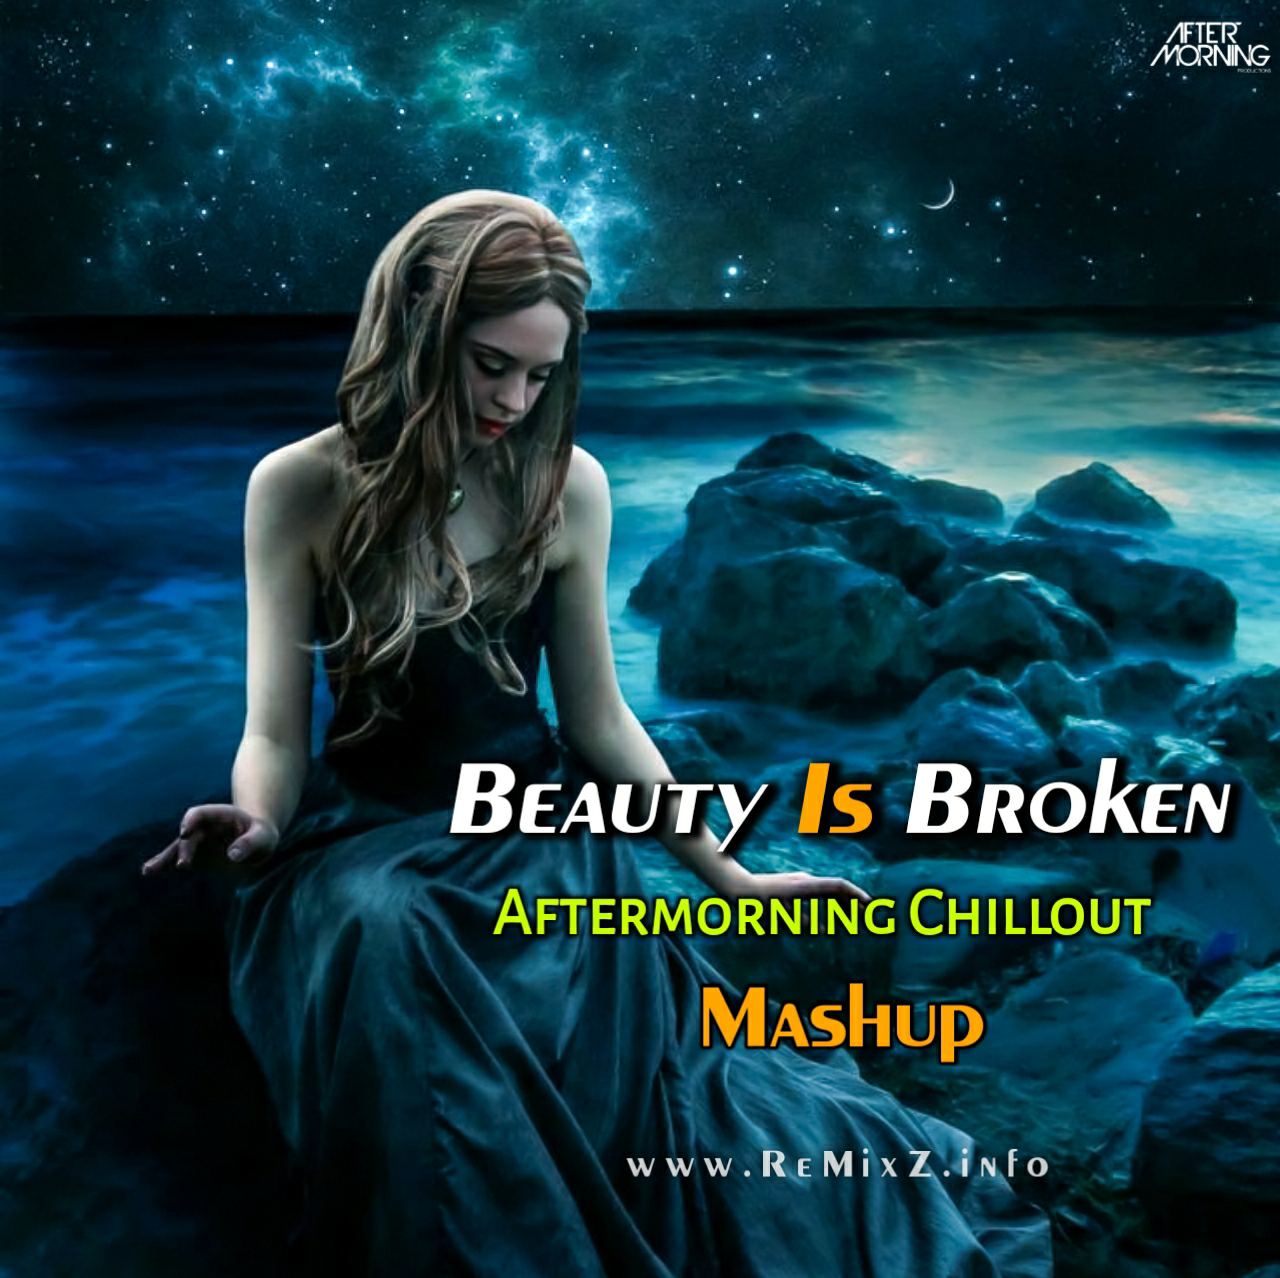 Beauty-Is-Broken-Mashup-Aftermorning-Chillout.jpg